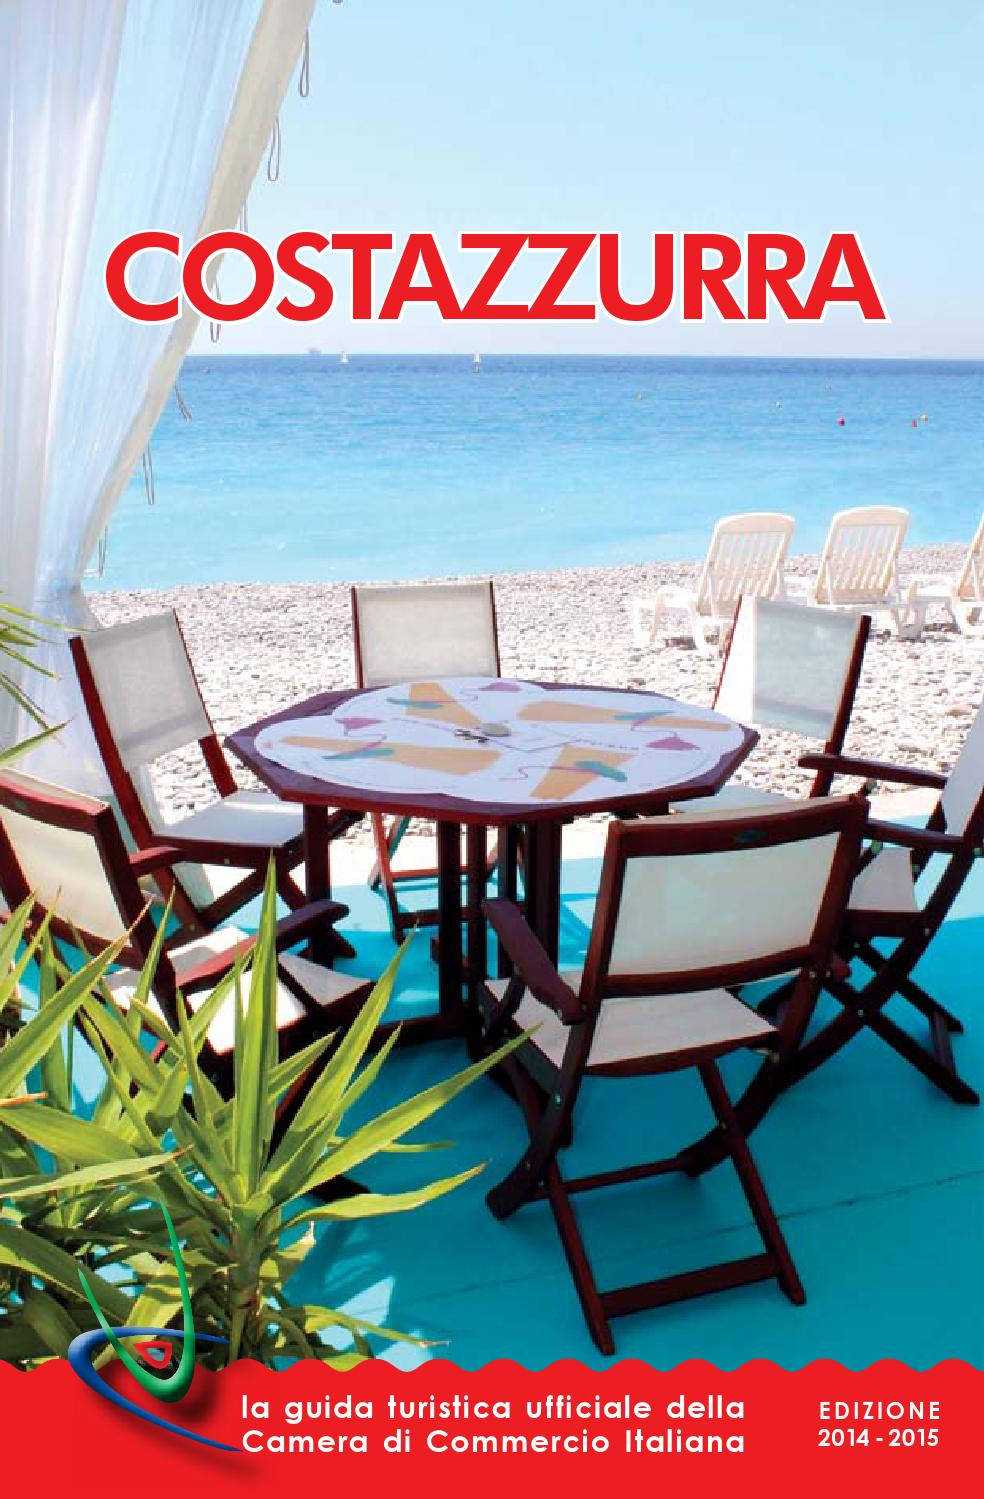 Issuu guida turistica costazzurra 2014 by chambre de for Chambre de commerce italienne nice